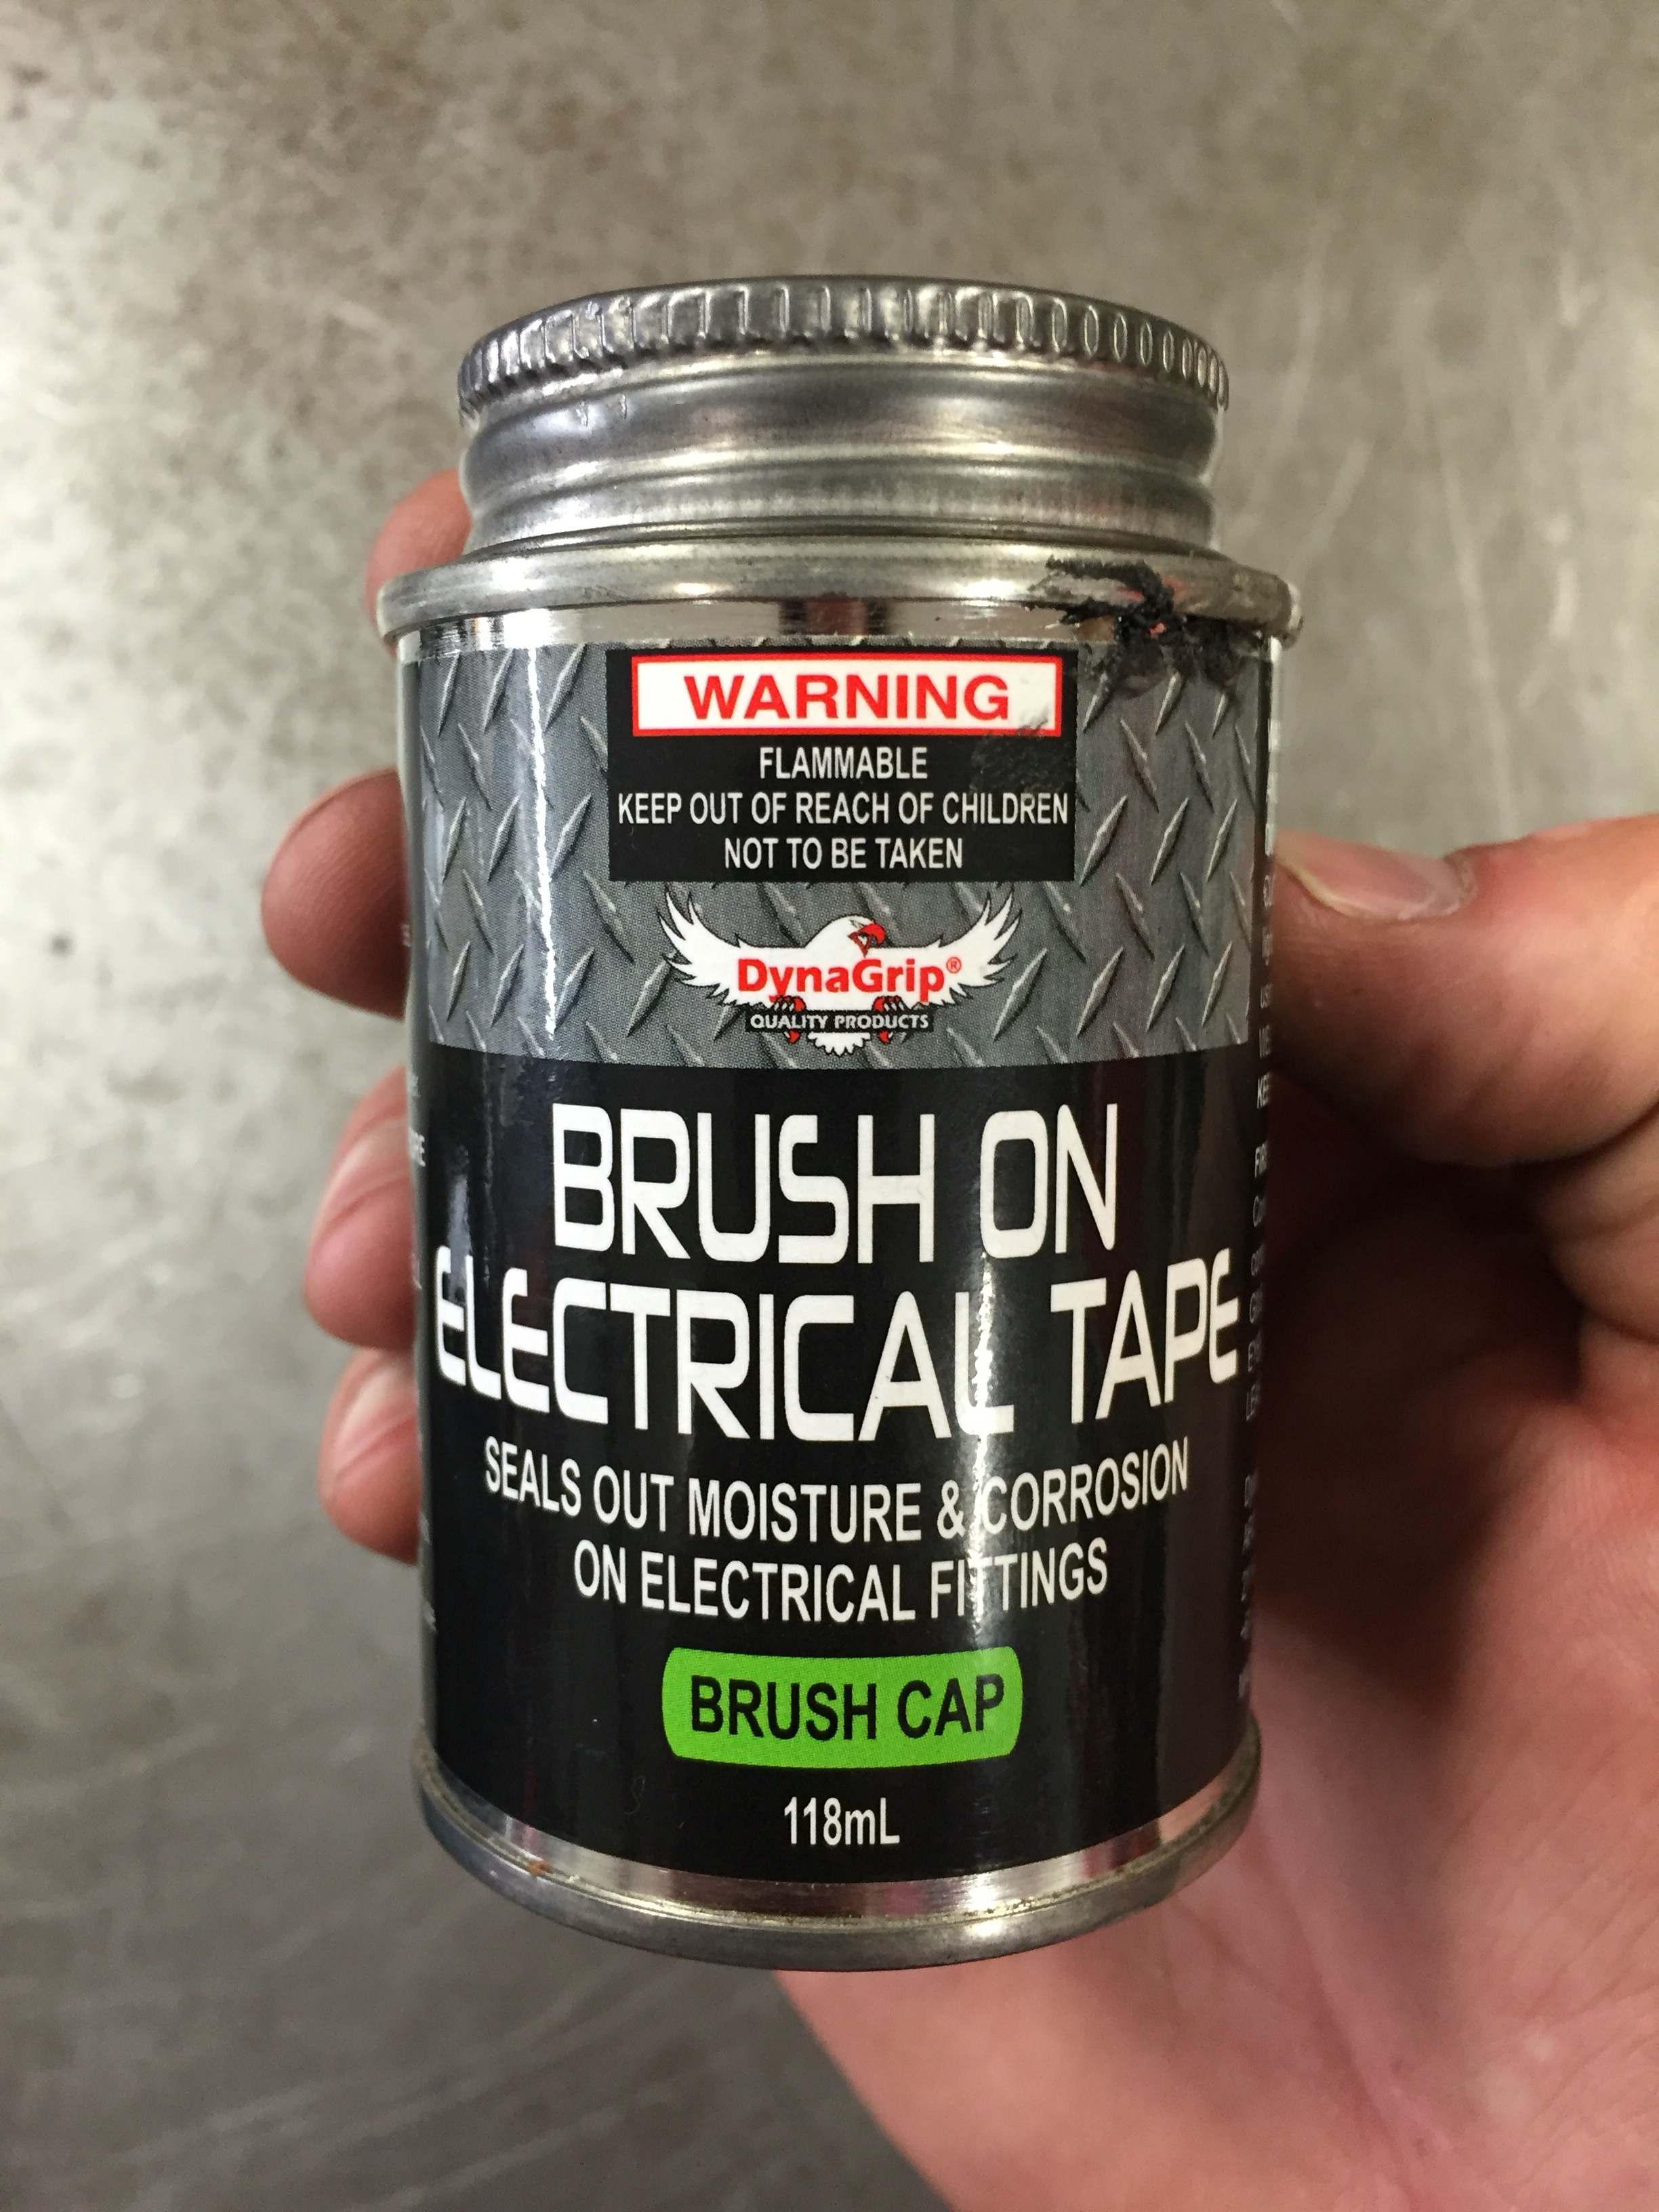 Brush on electrical tape